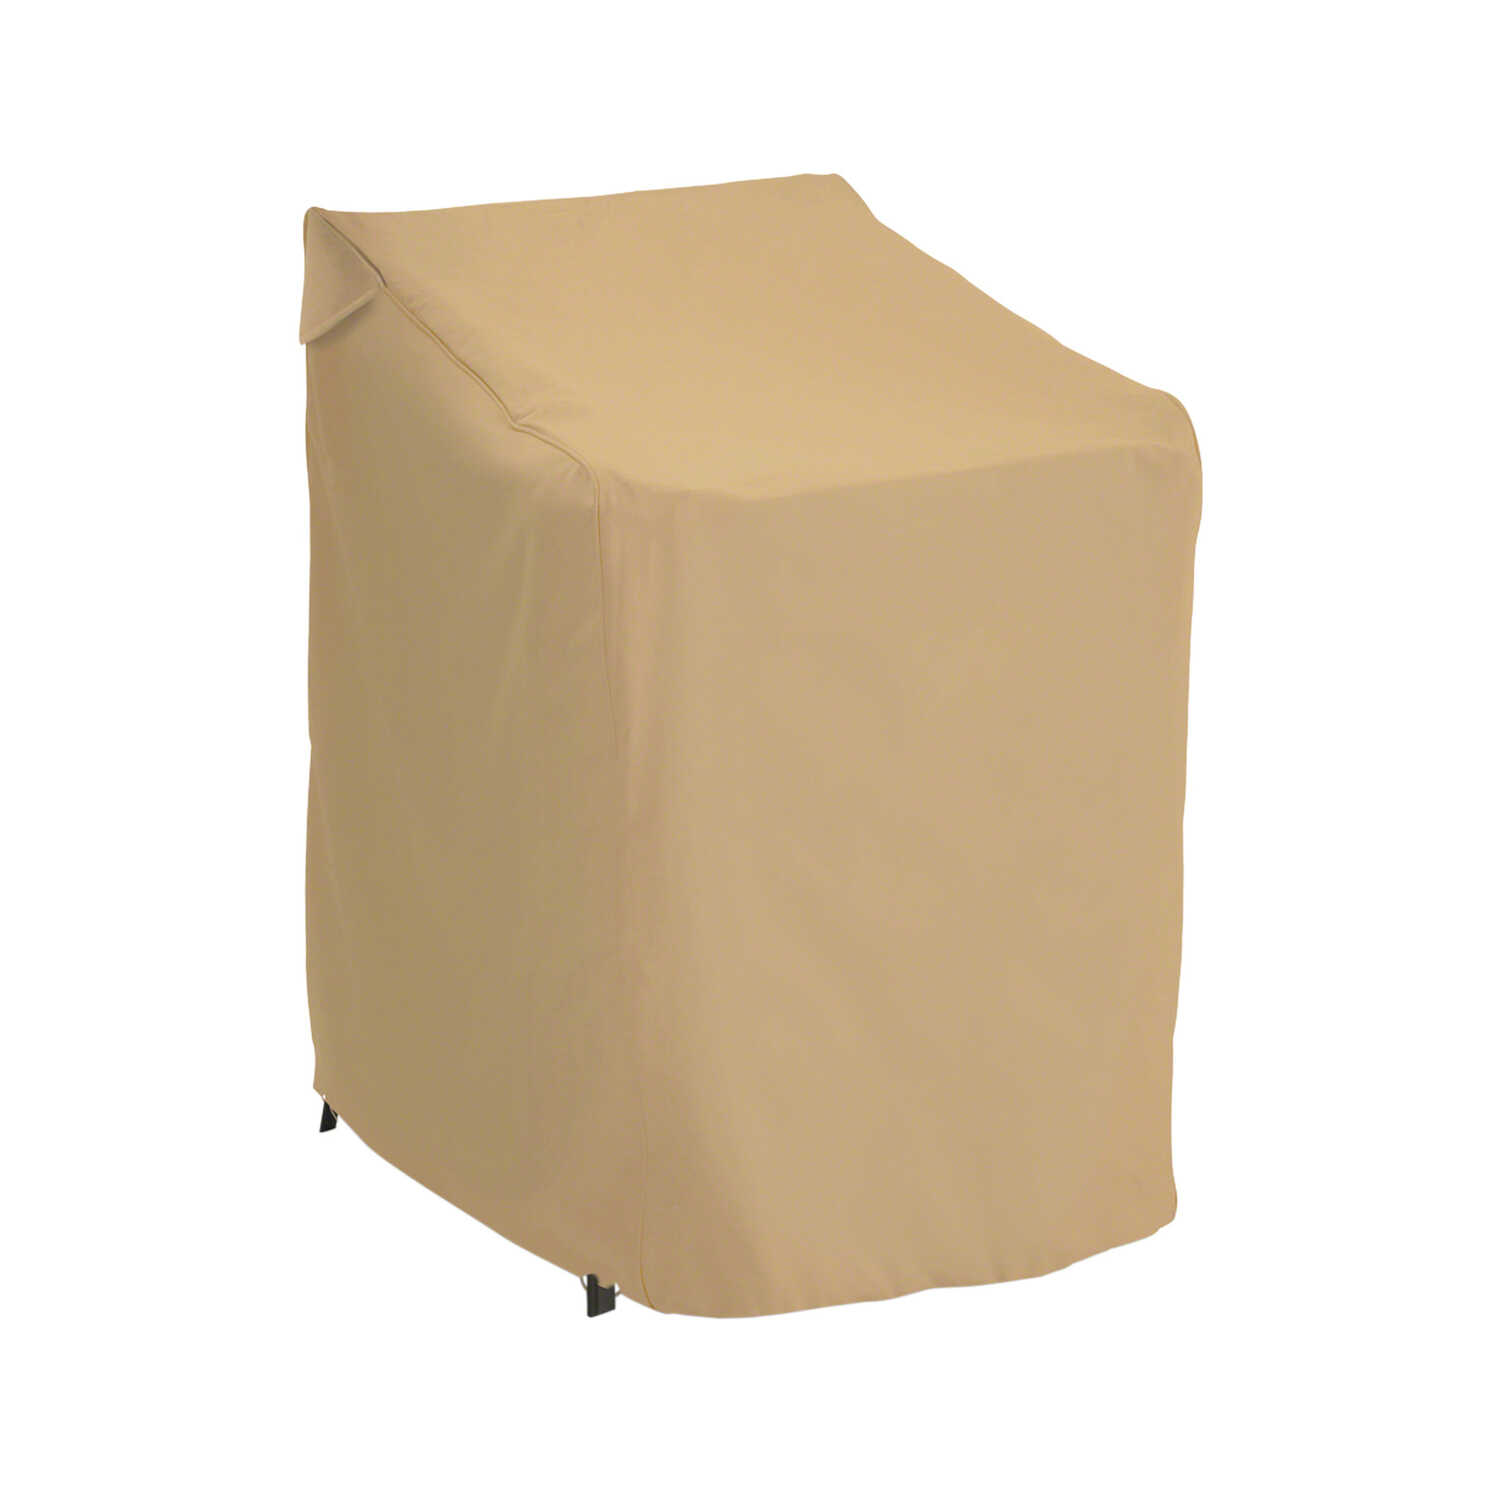 Classic Accessories  47 in. H x 28 in. W x 36 in. L Brown  Chair Cover  Polyester  Terrazzo